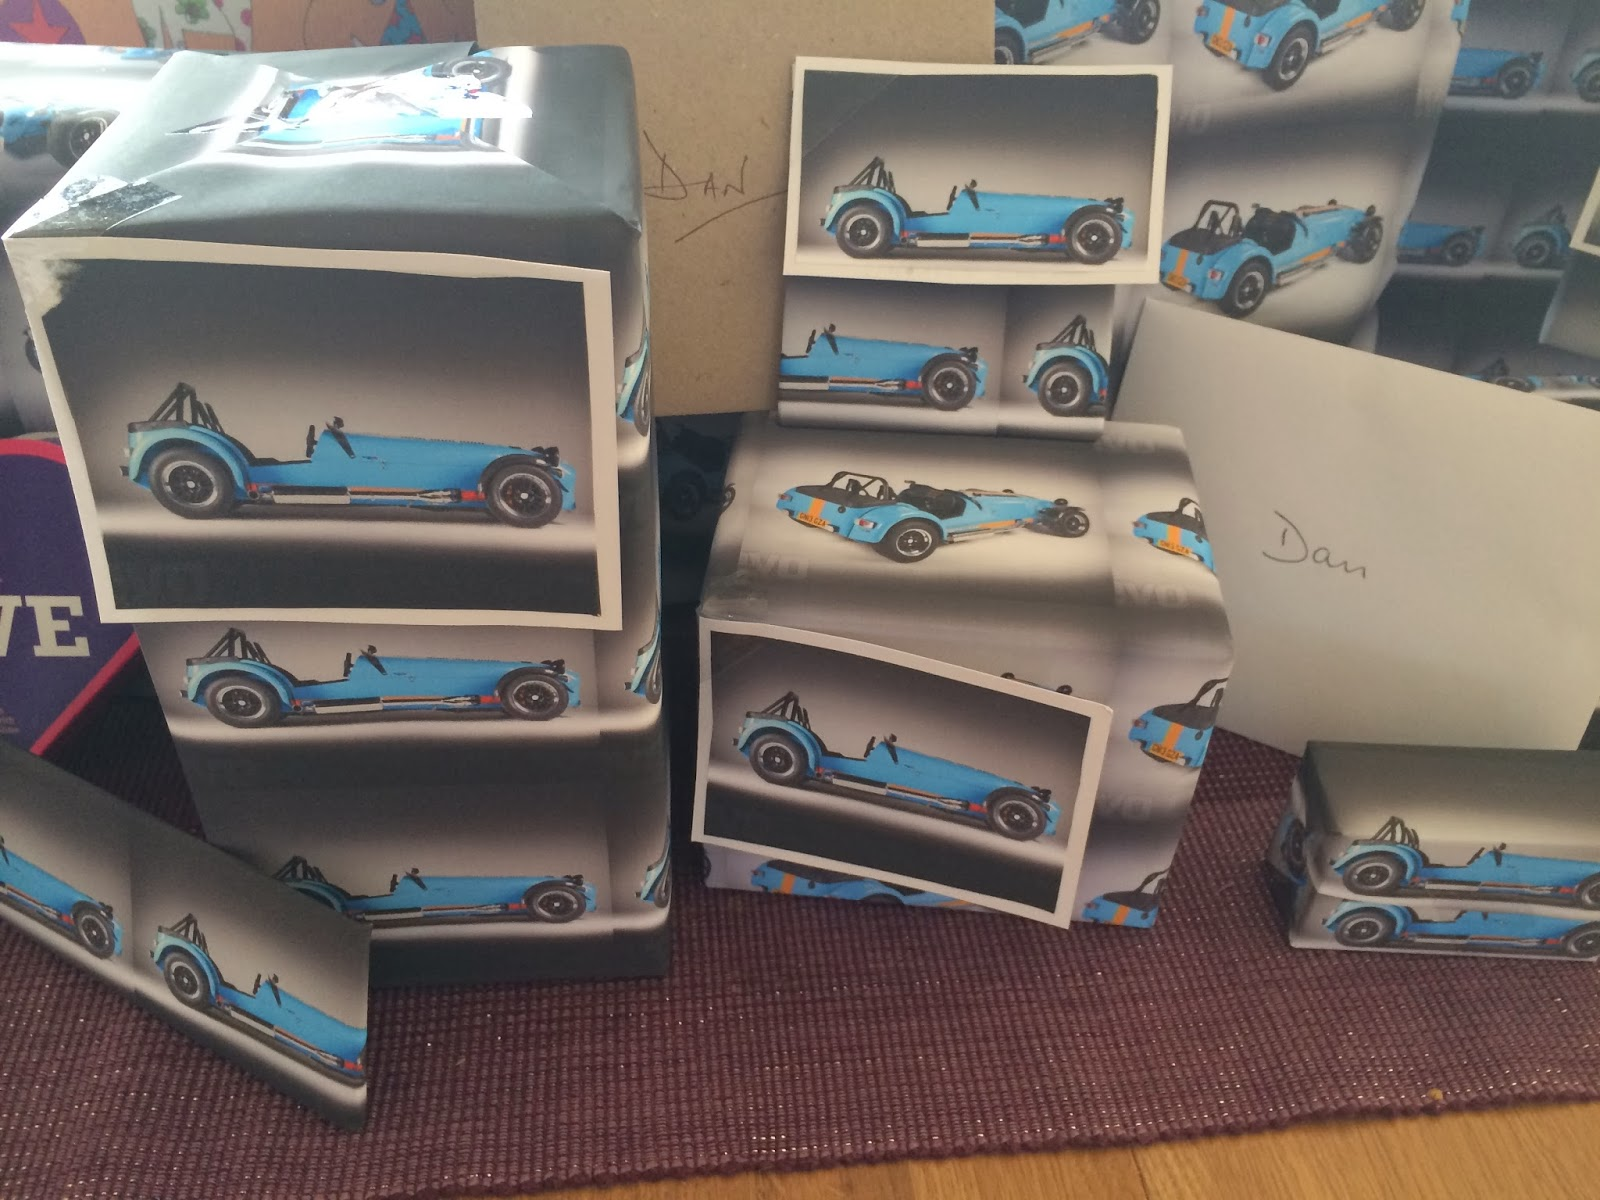 A close up of the Caterham wrapping paper